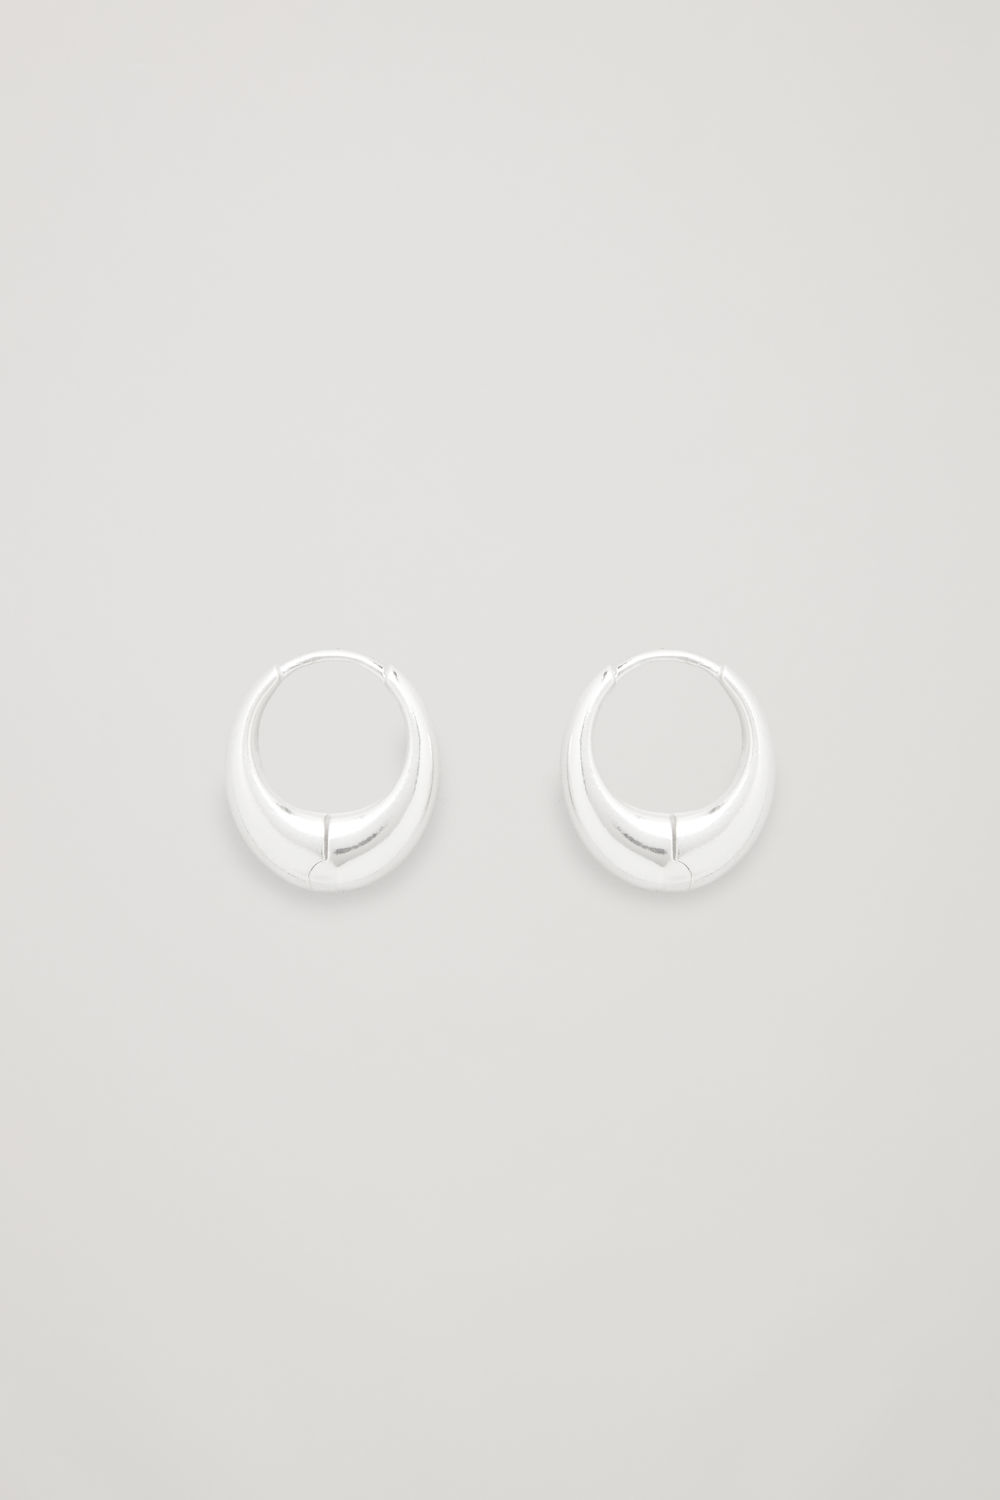 CURVED STERLING-SILVER HOOP EARRINGS